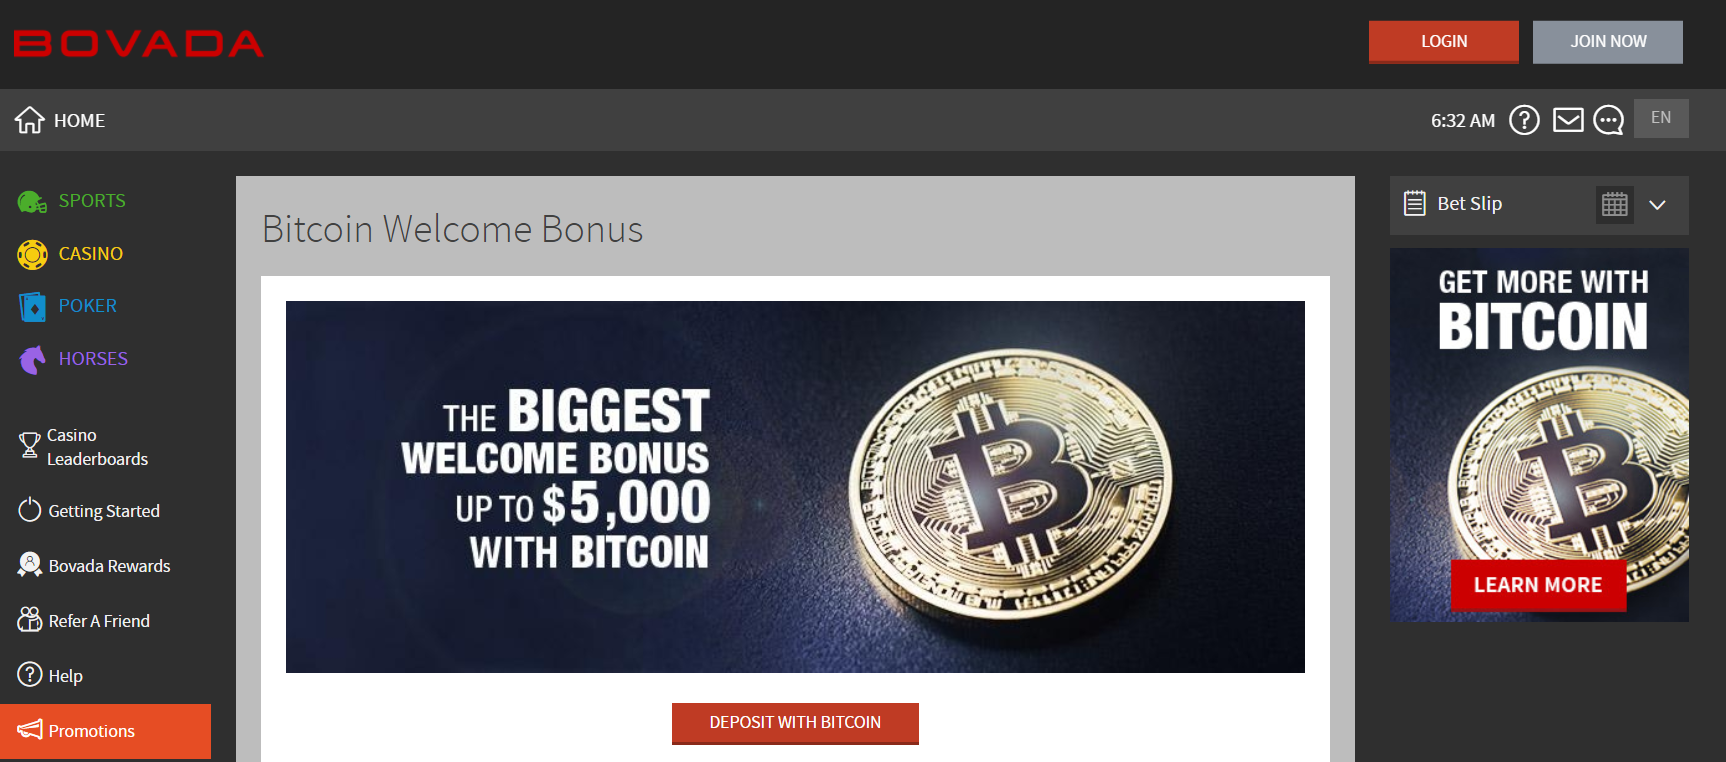 Bitcoin Casino Welcome Bonus at Bovada